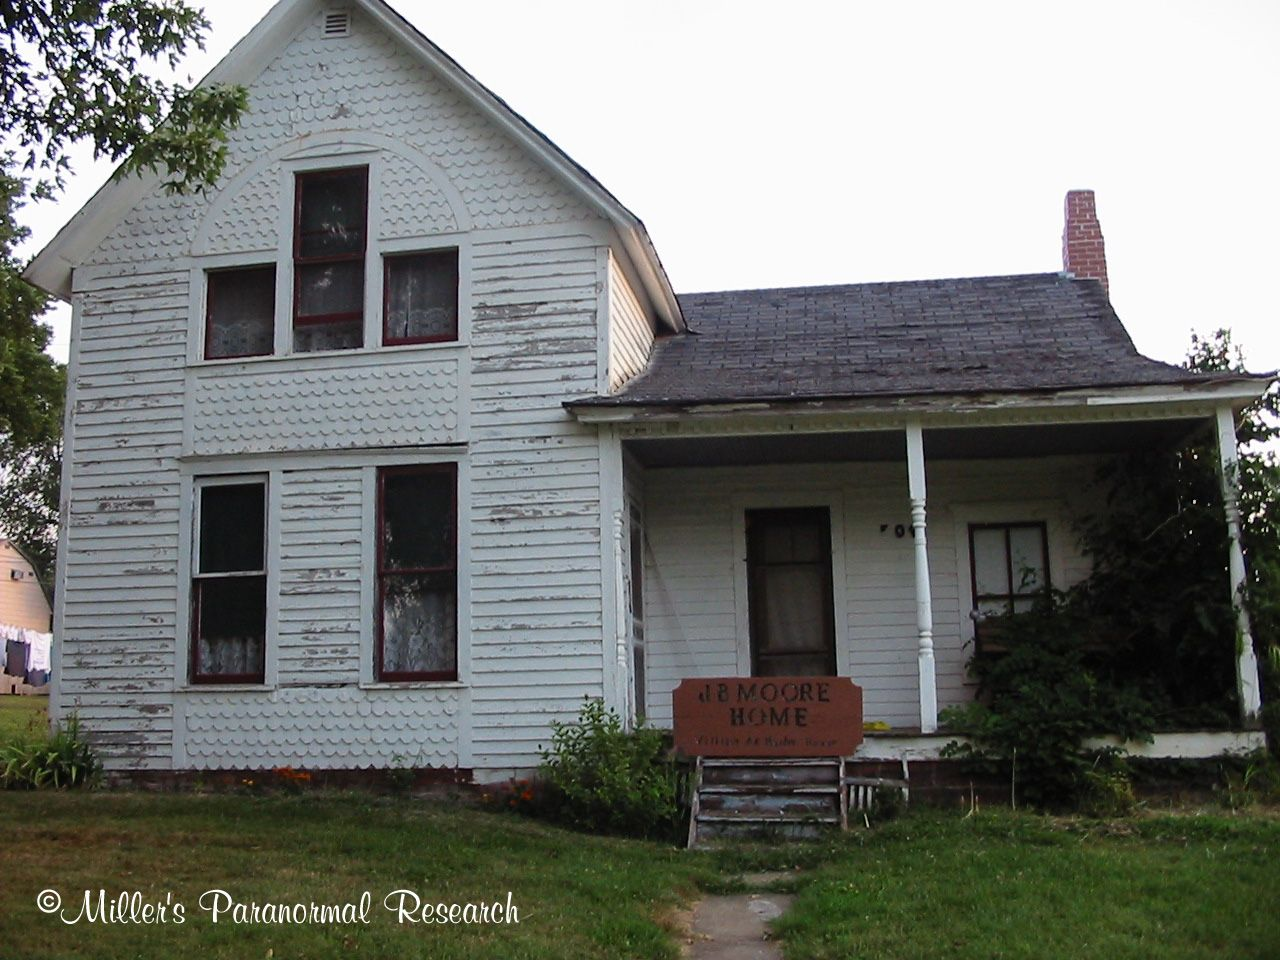 the villisca axe murder house The villisca ax murder house - now with overnight accommodation if you've  never heard of the villisca ax murder house and you're into the world of.